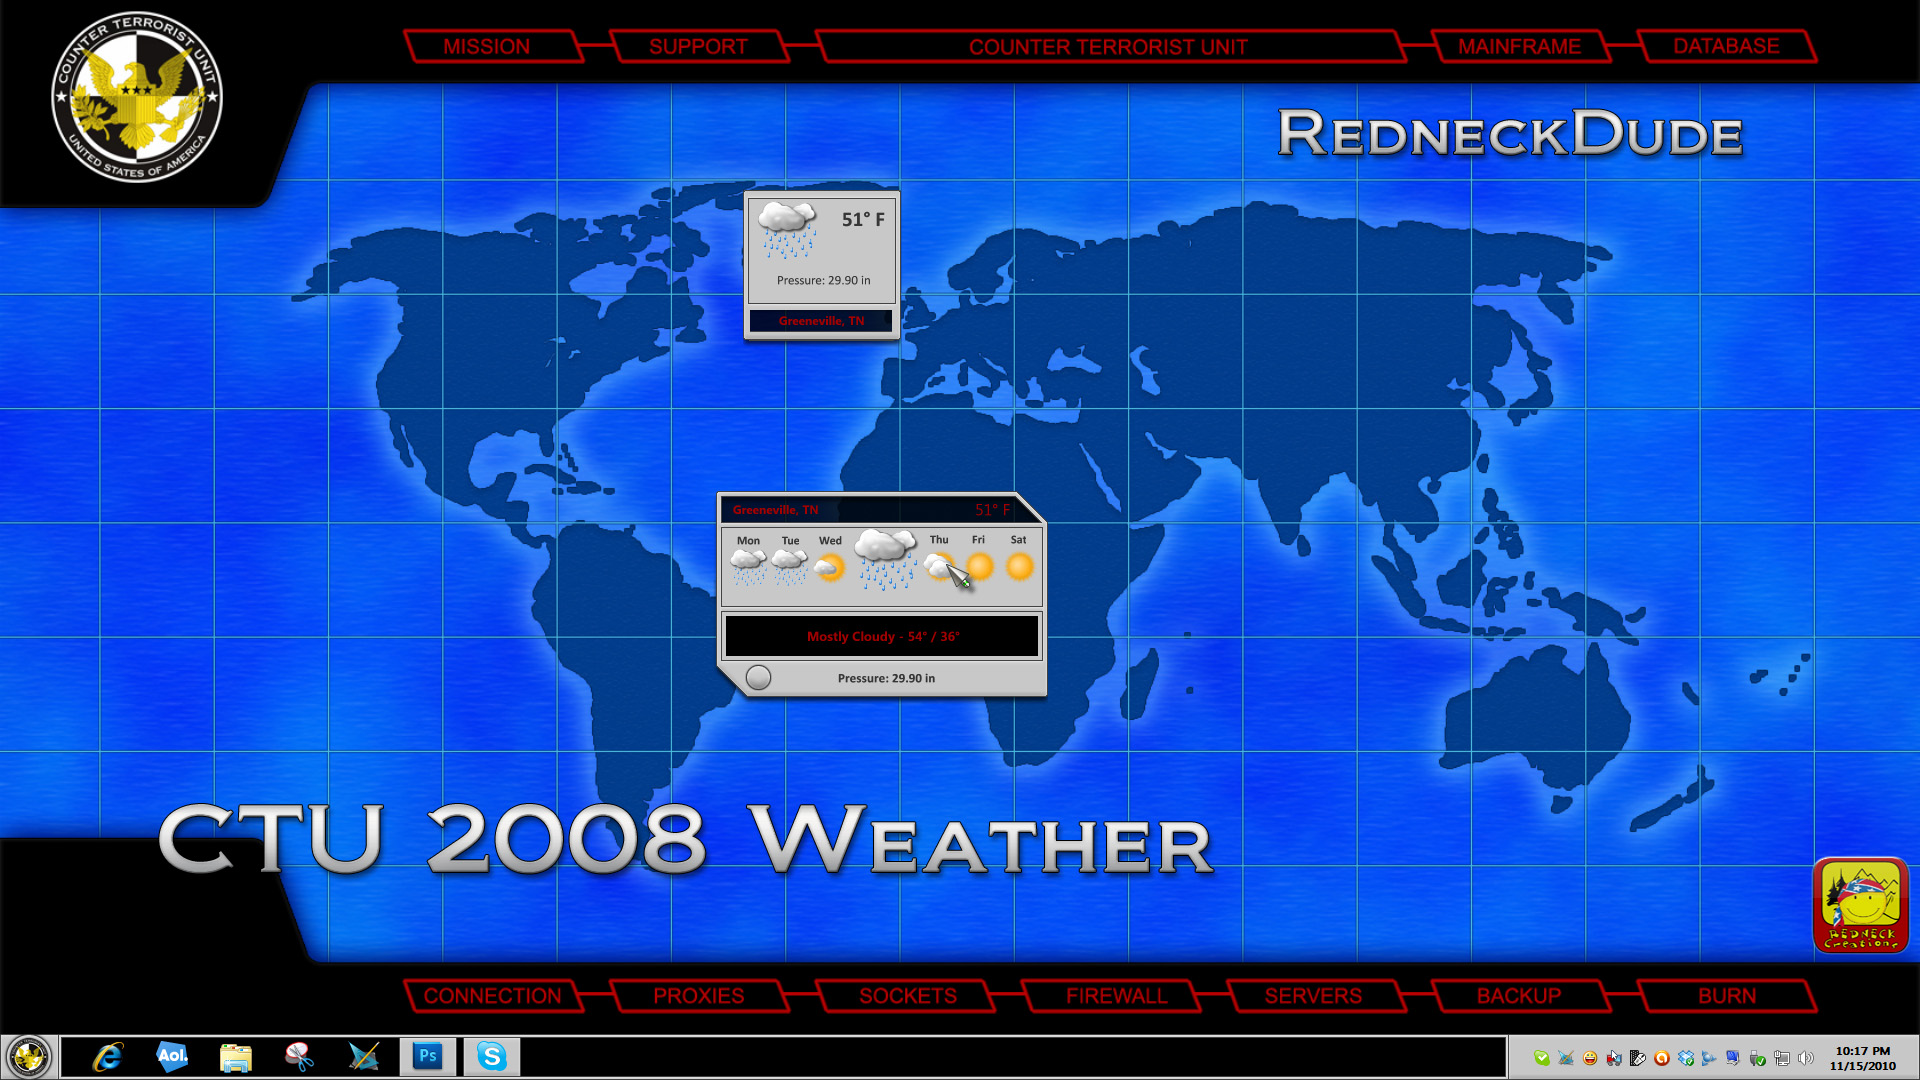 CTU 2008 Weather